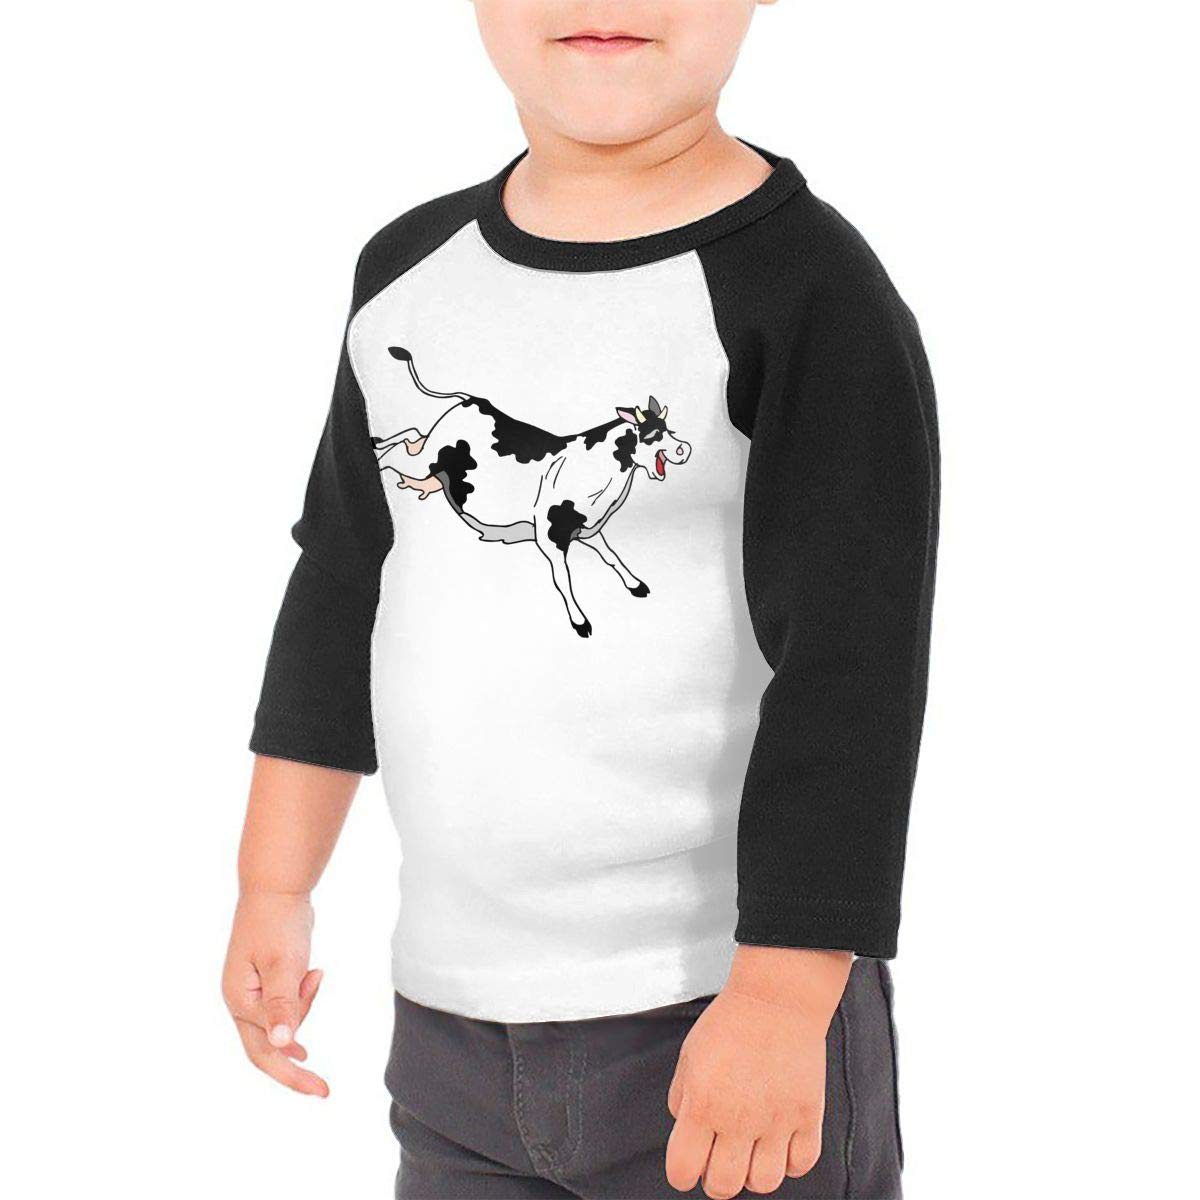 QPKMRTZTX0 Boys Girls Kids /& Toddler Holstein Friesian Cattle Long Sleeve T-Shirt 100/% Cotton